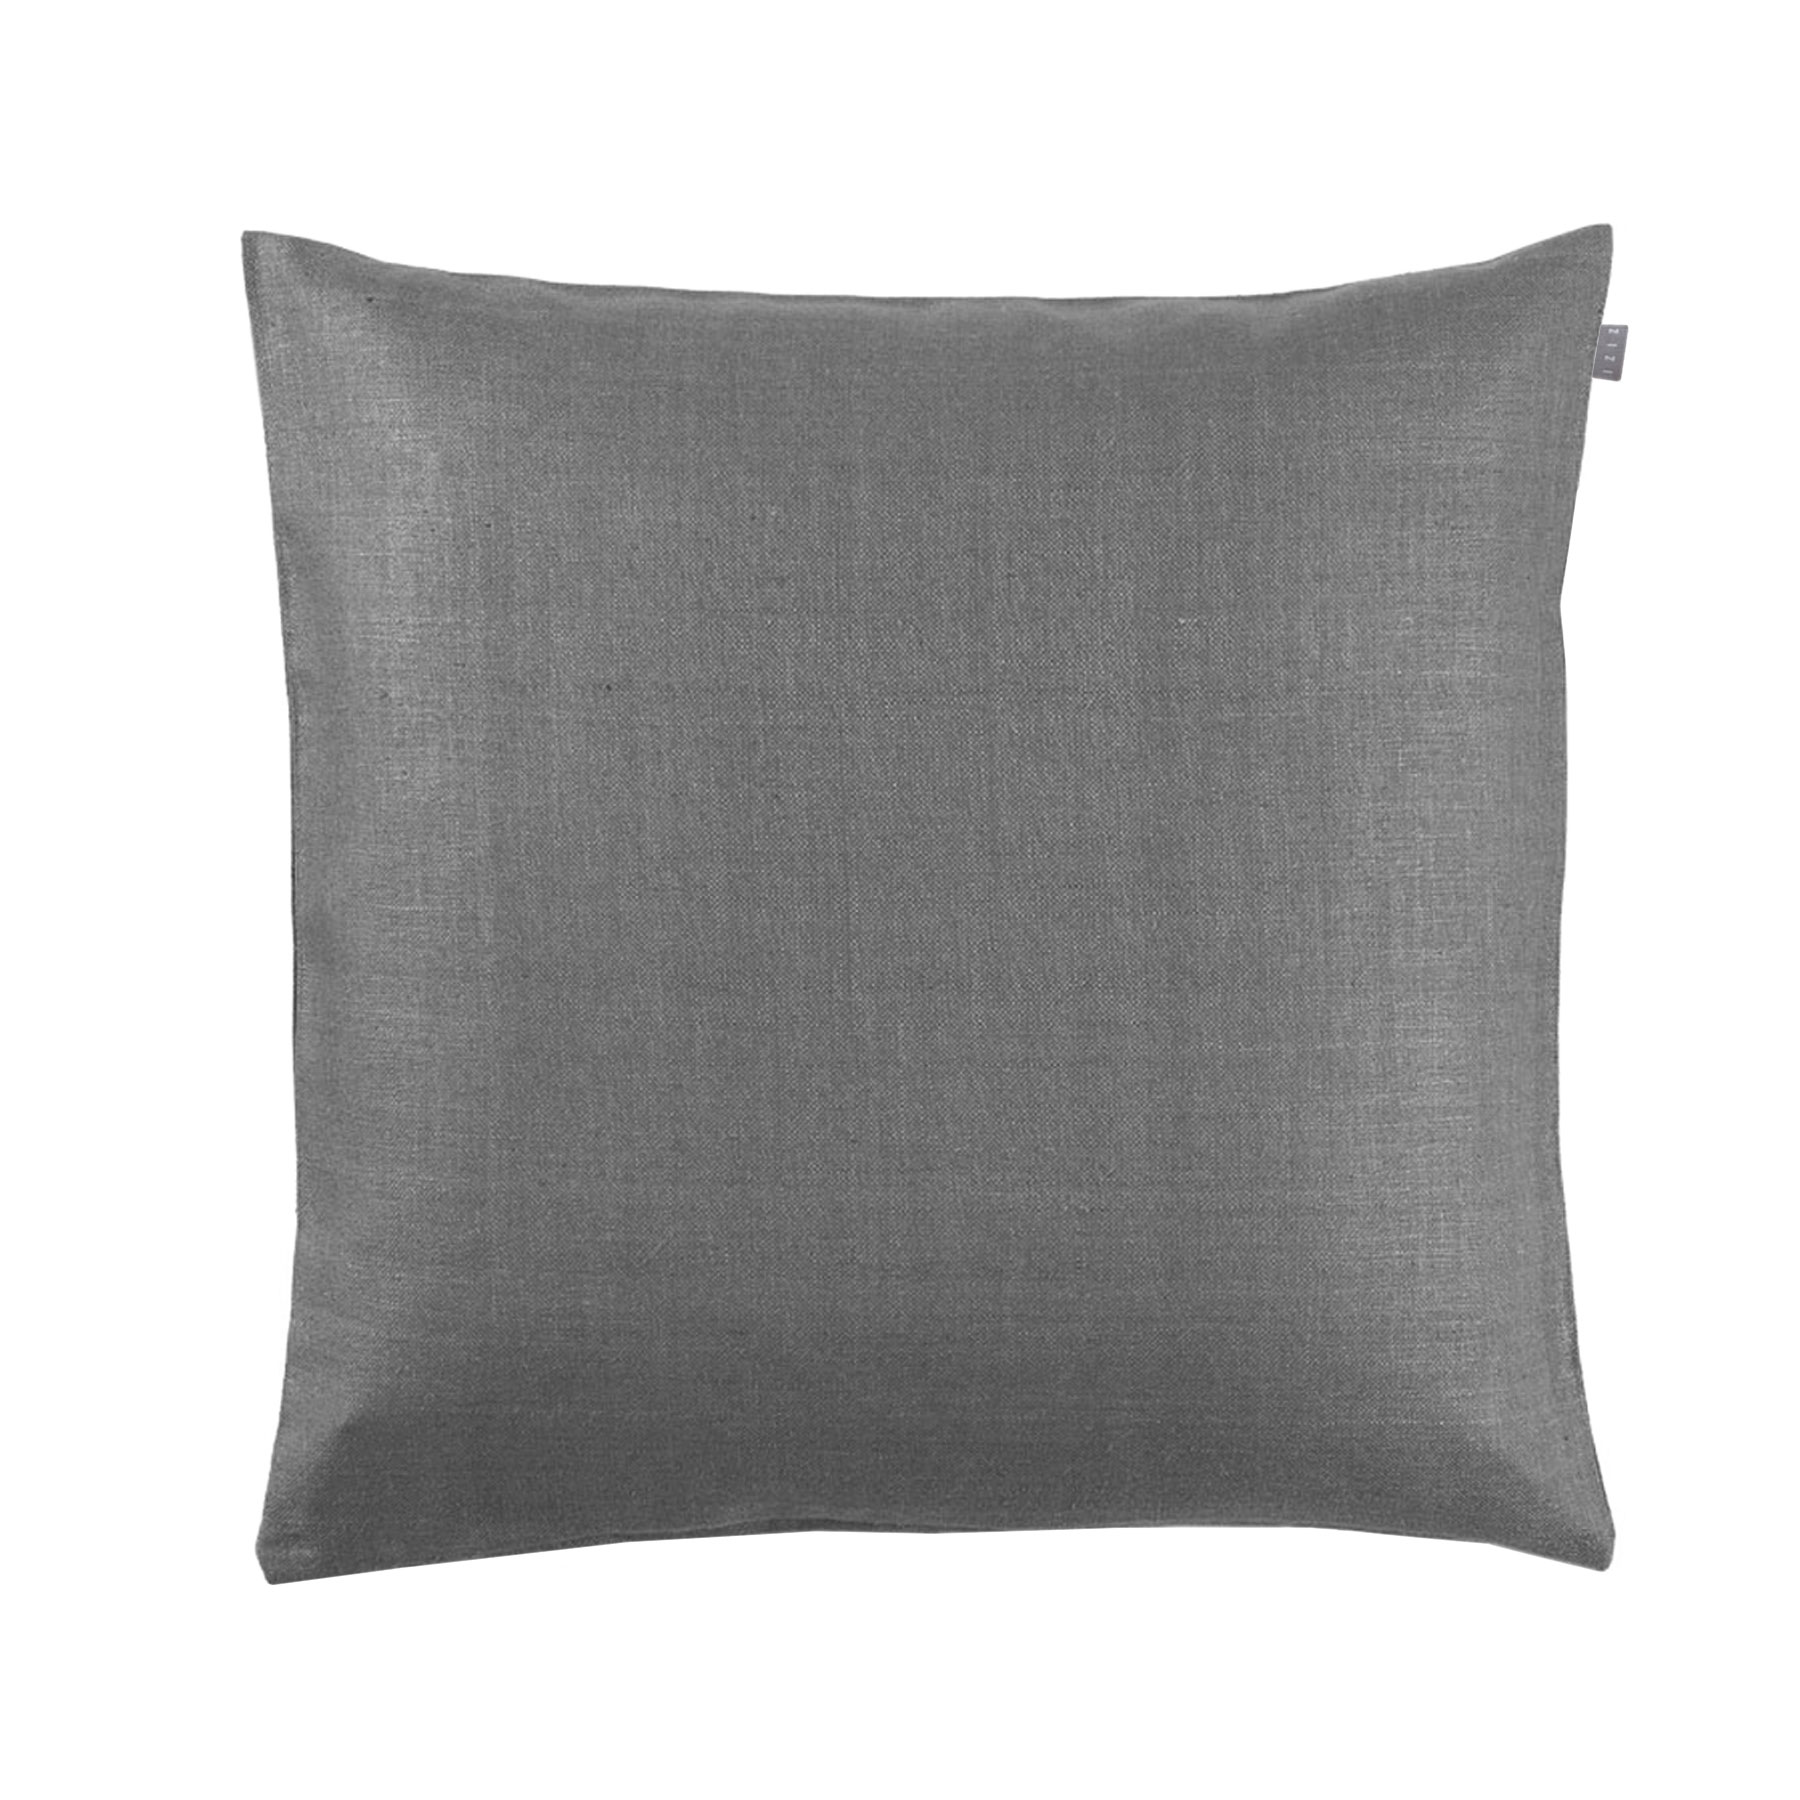 CUSHION COVER PLAIN <br />quicksilver gray